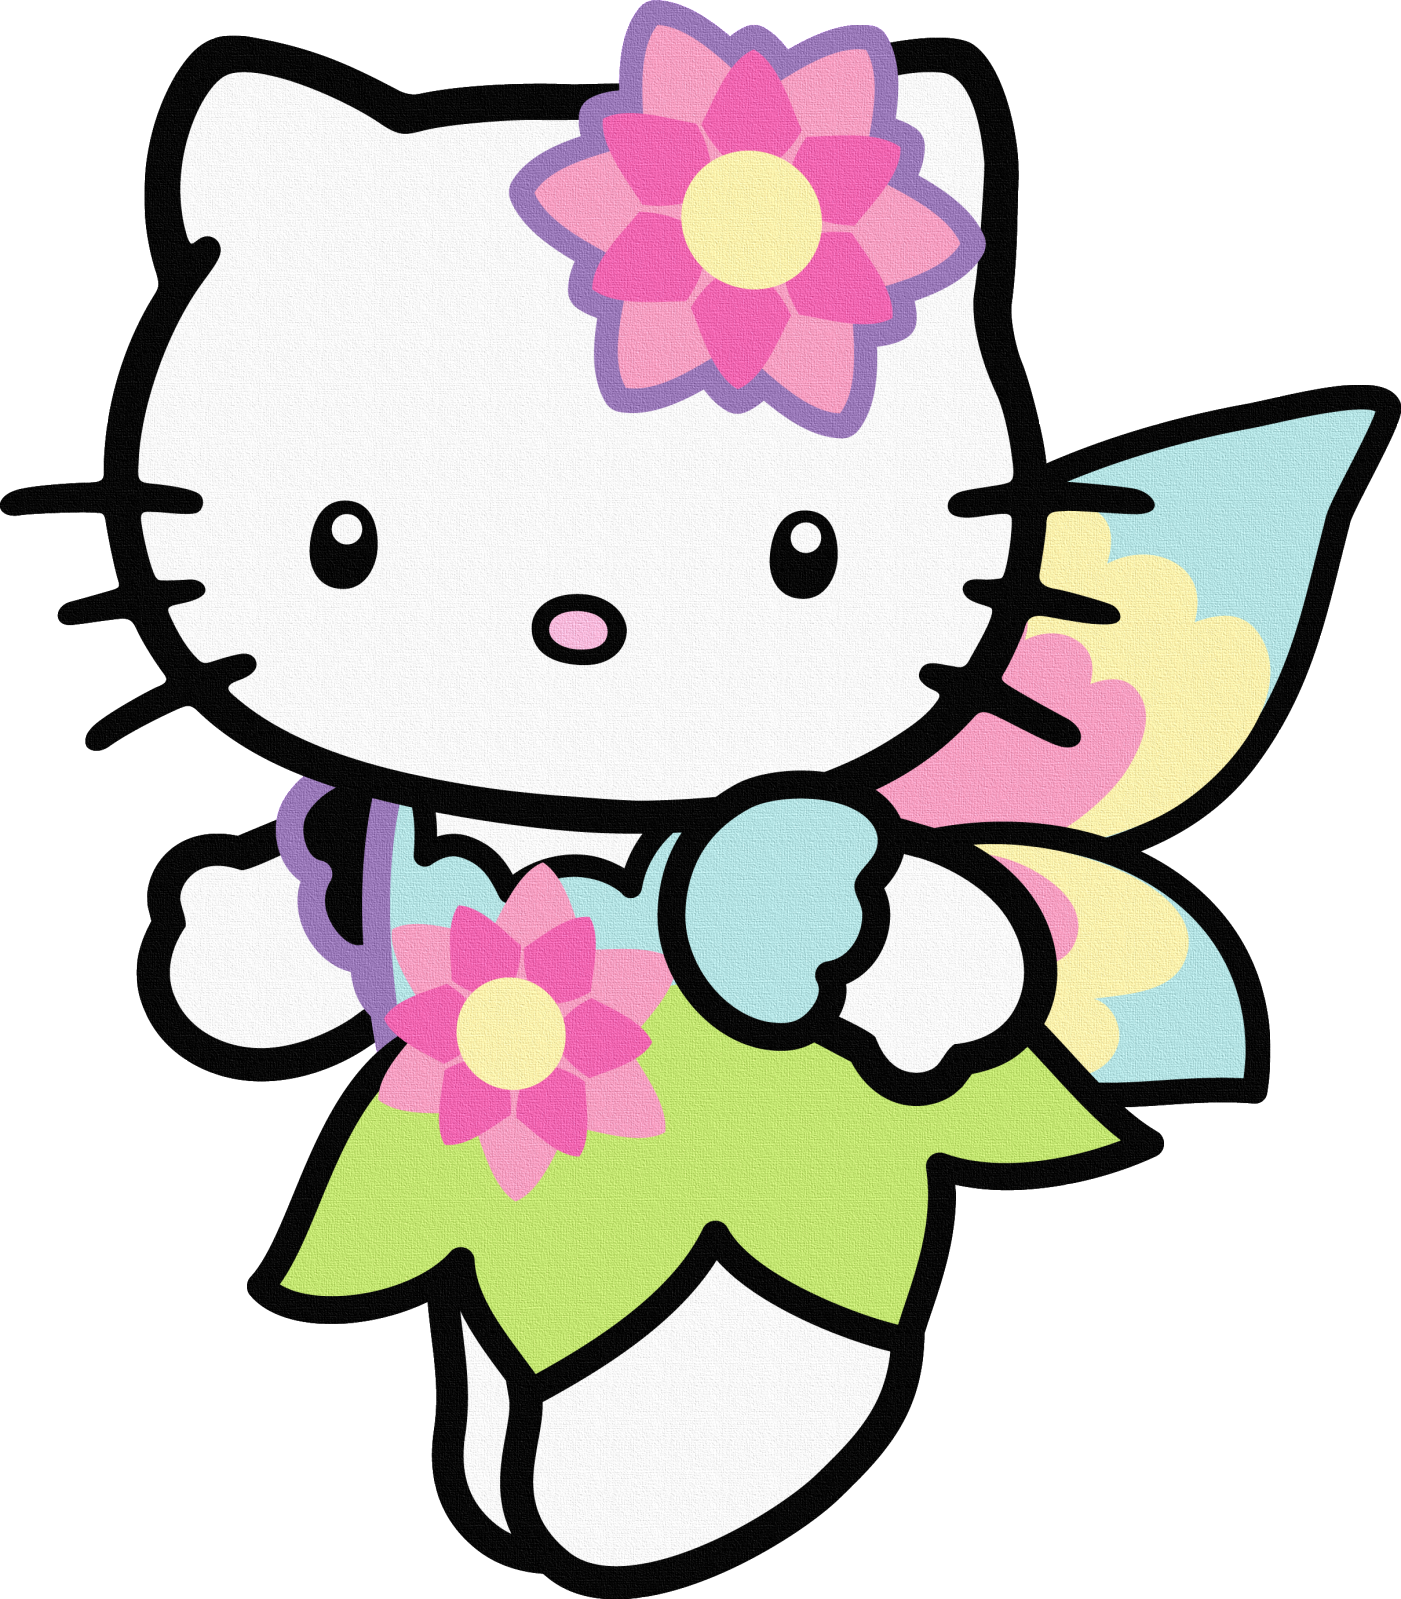 Pin by Baucam on PNG   Pinterest   Hello kitty